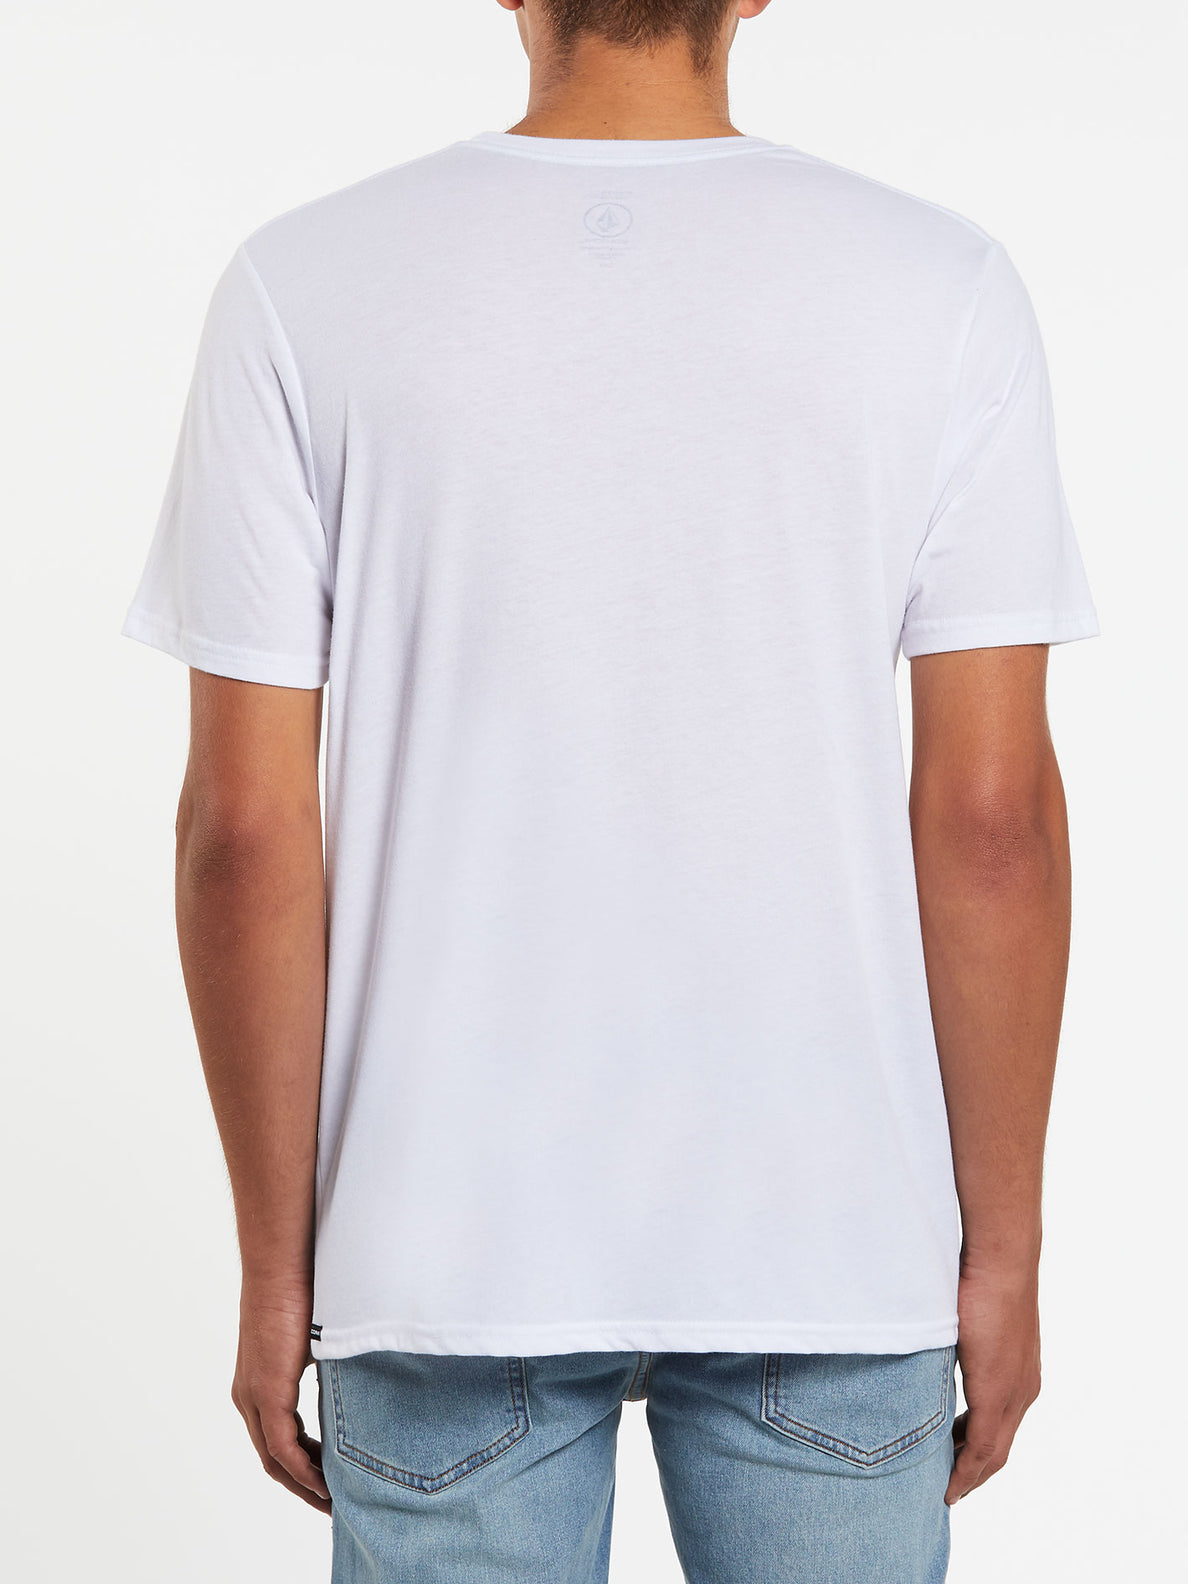 Trepid Short Sleeve Tee - White (A5732002_WHT) [B]